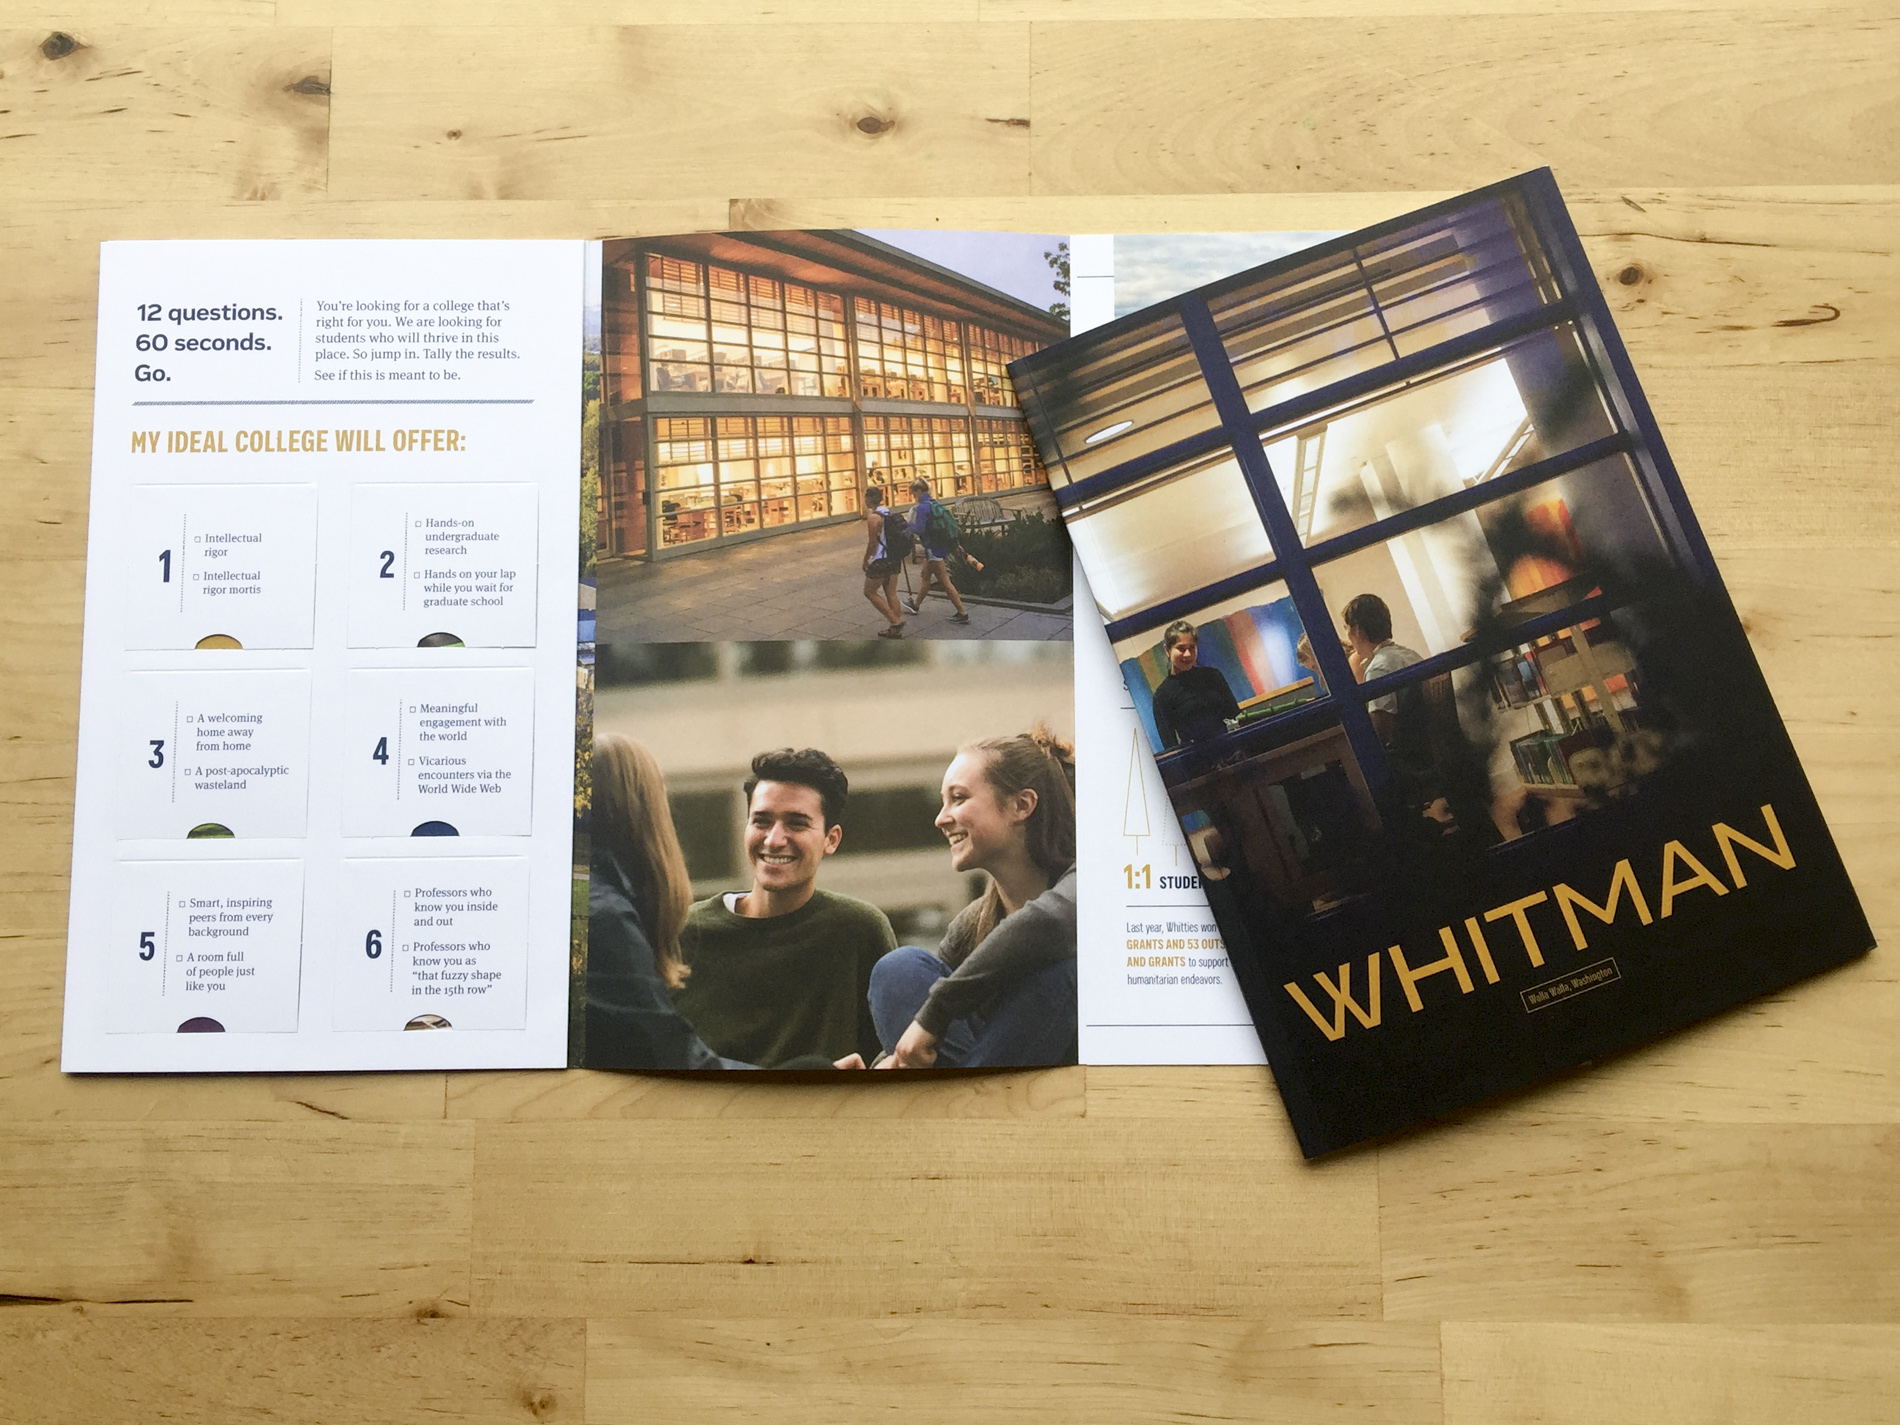 The recently published Whitman College Viewbook. Photography by Matthew Lester